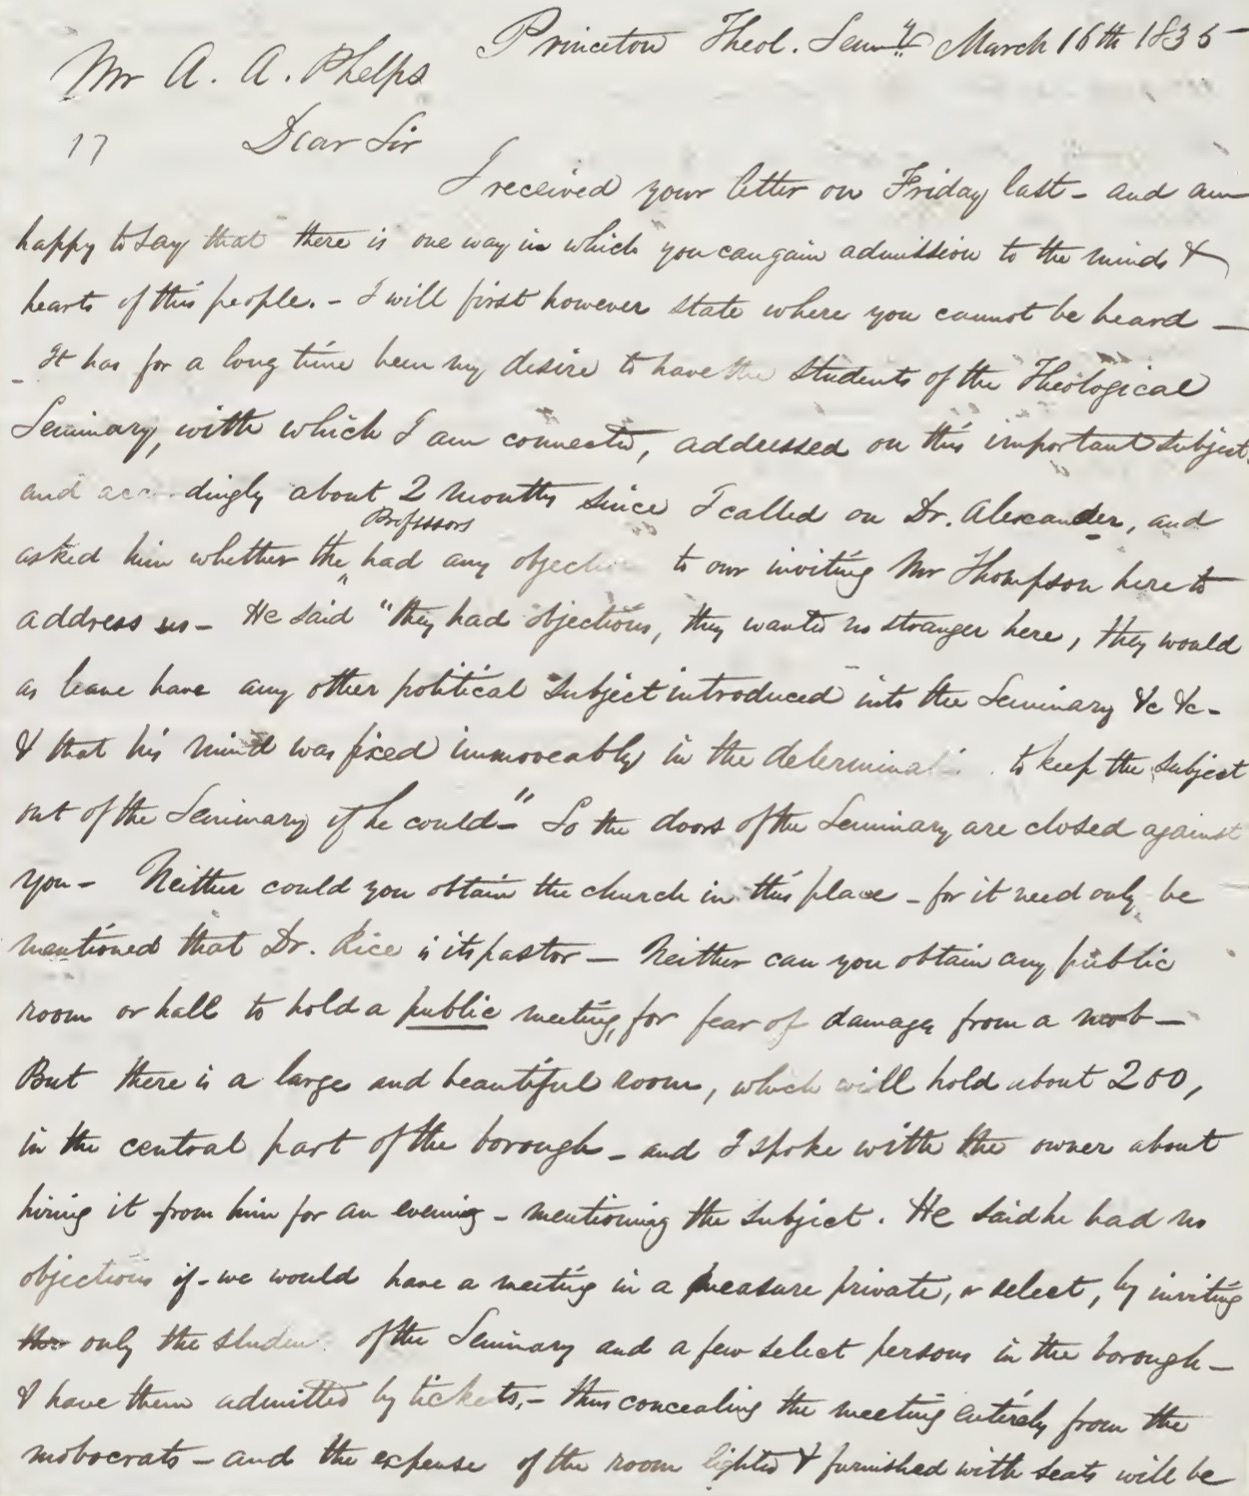 Letter from Lewis C. Gunn